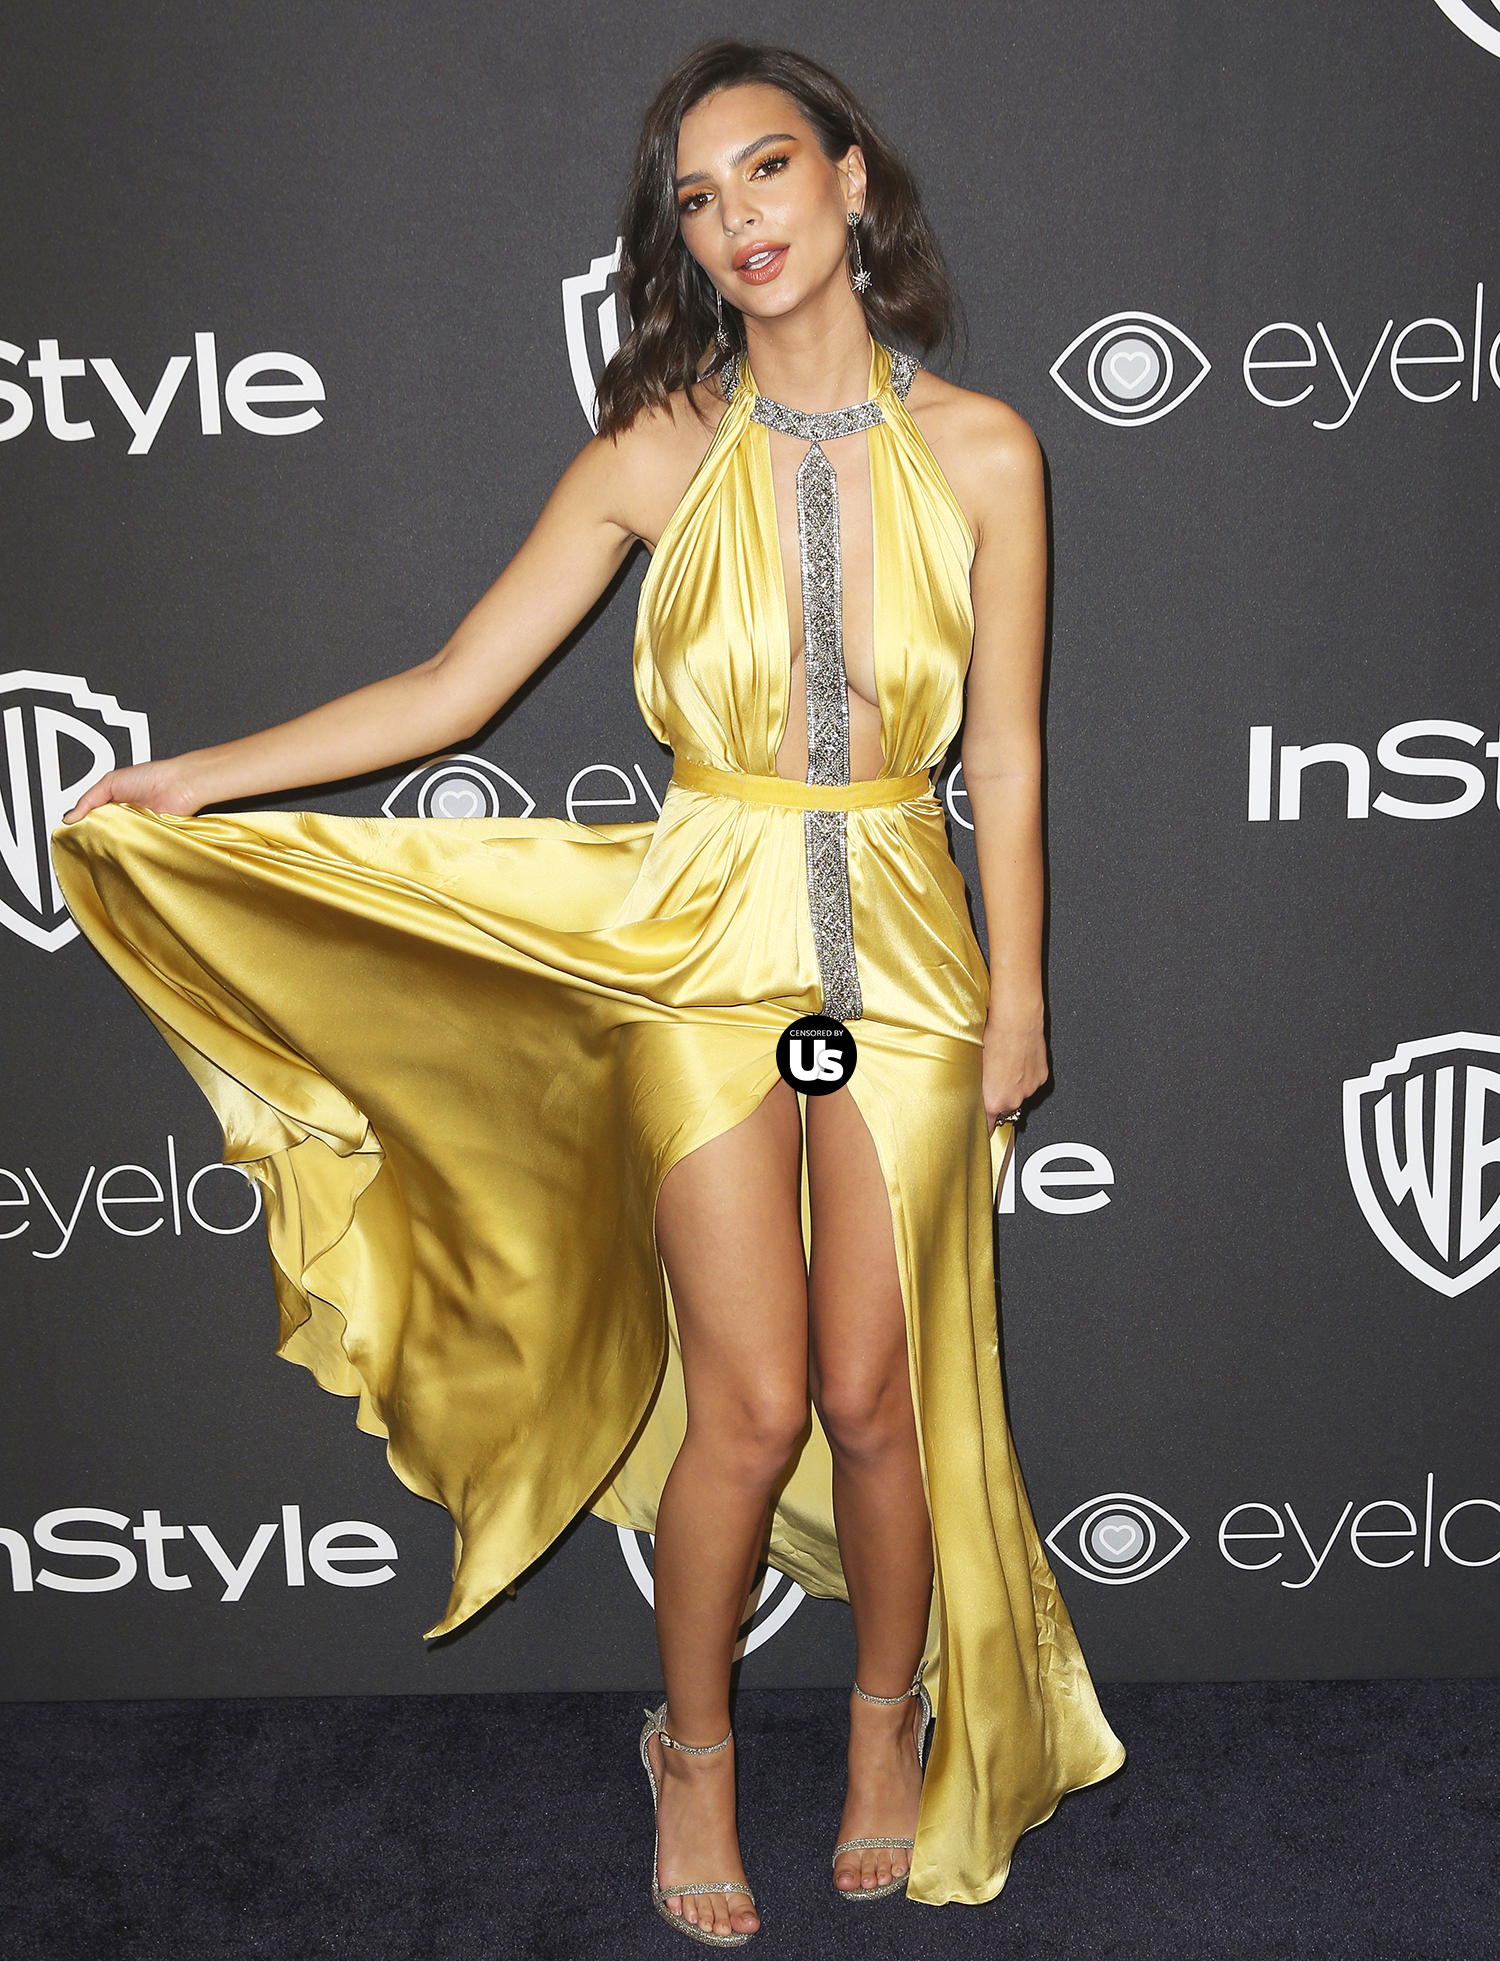 Emily Ratajkowski arrives at the InStyle and Warner Bros. Golden Globes afterparty at the Beverly Hilton Hotel on Sunday, Jan. 8, 2017, in Beverly Hills, Calif.